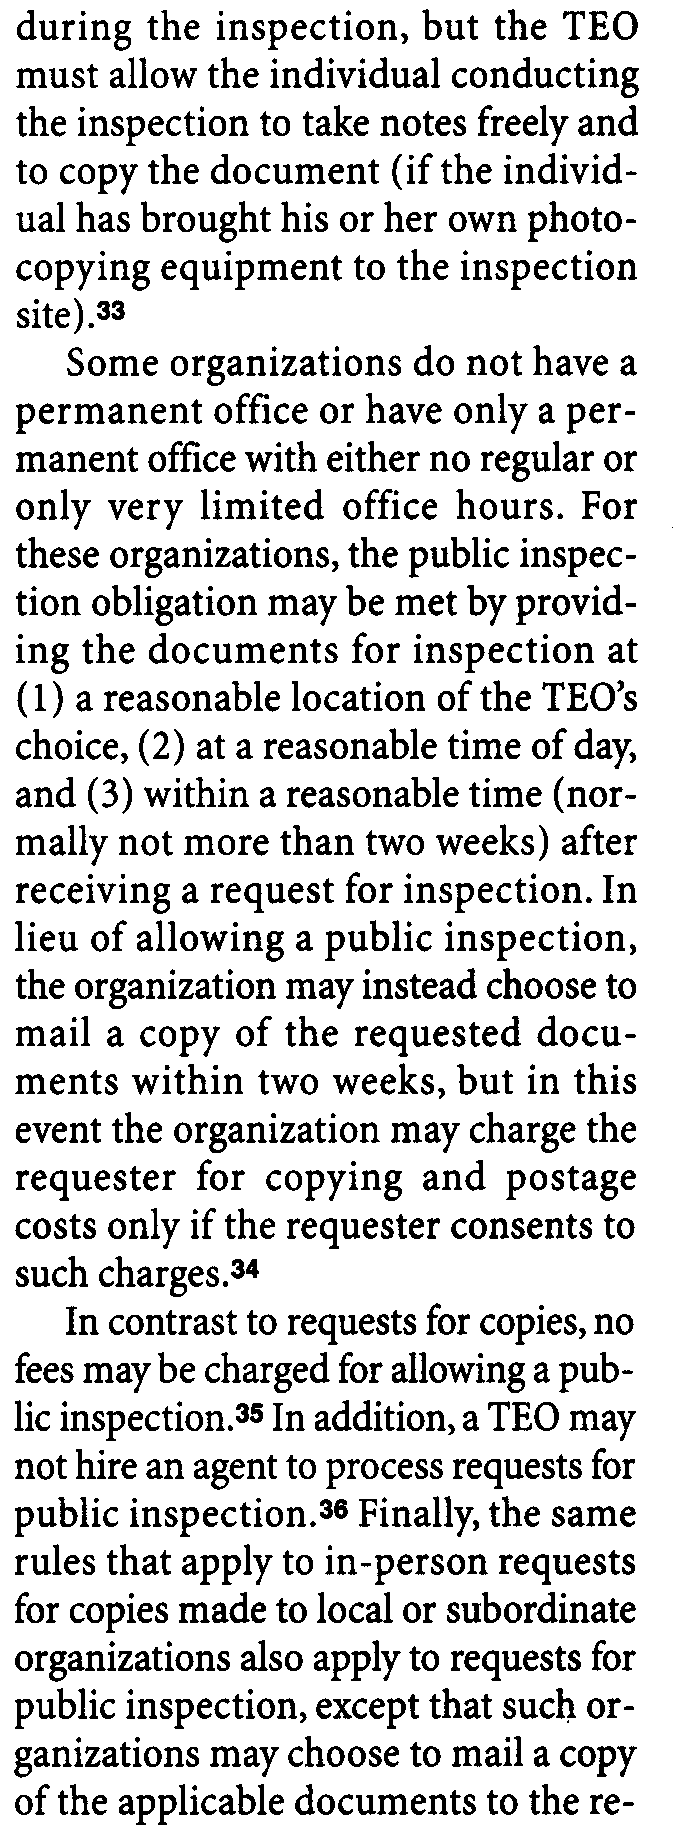 6104(d)-3(f) ply for TEOs that do not file their own returns or their own applications for tax exemption but instead are covered by a group return or group application filed by a central or parent